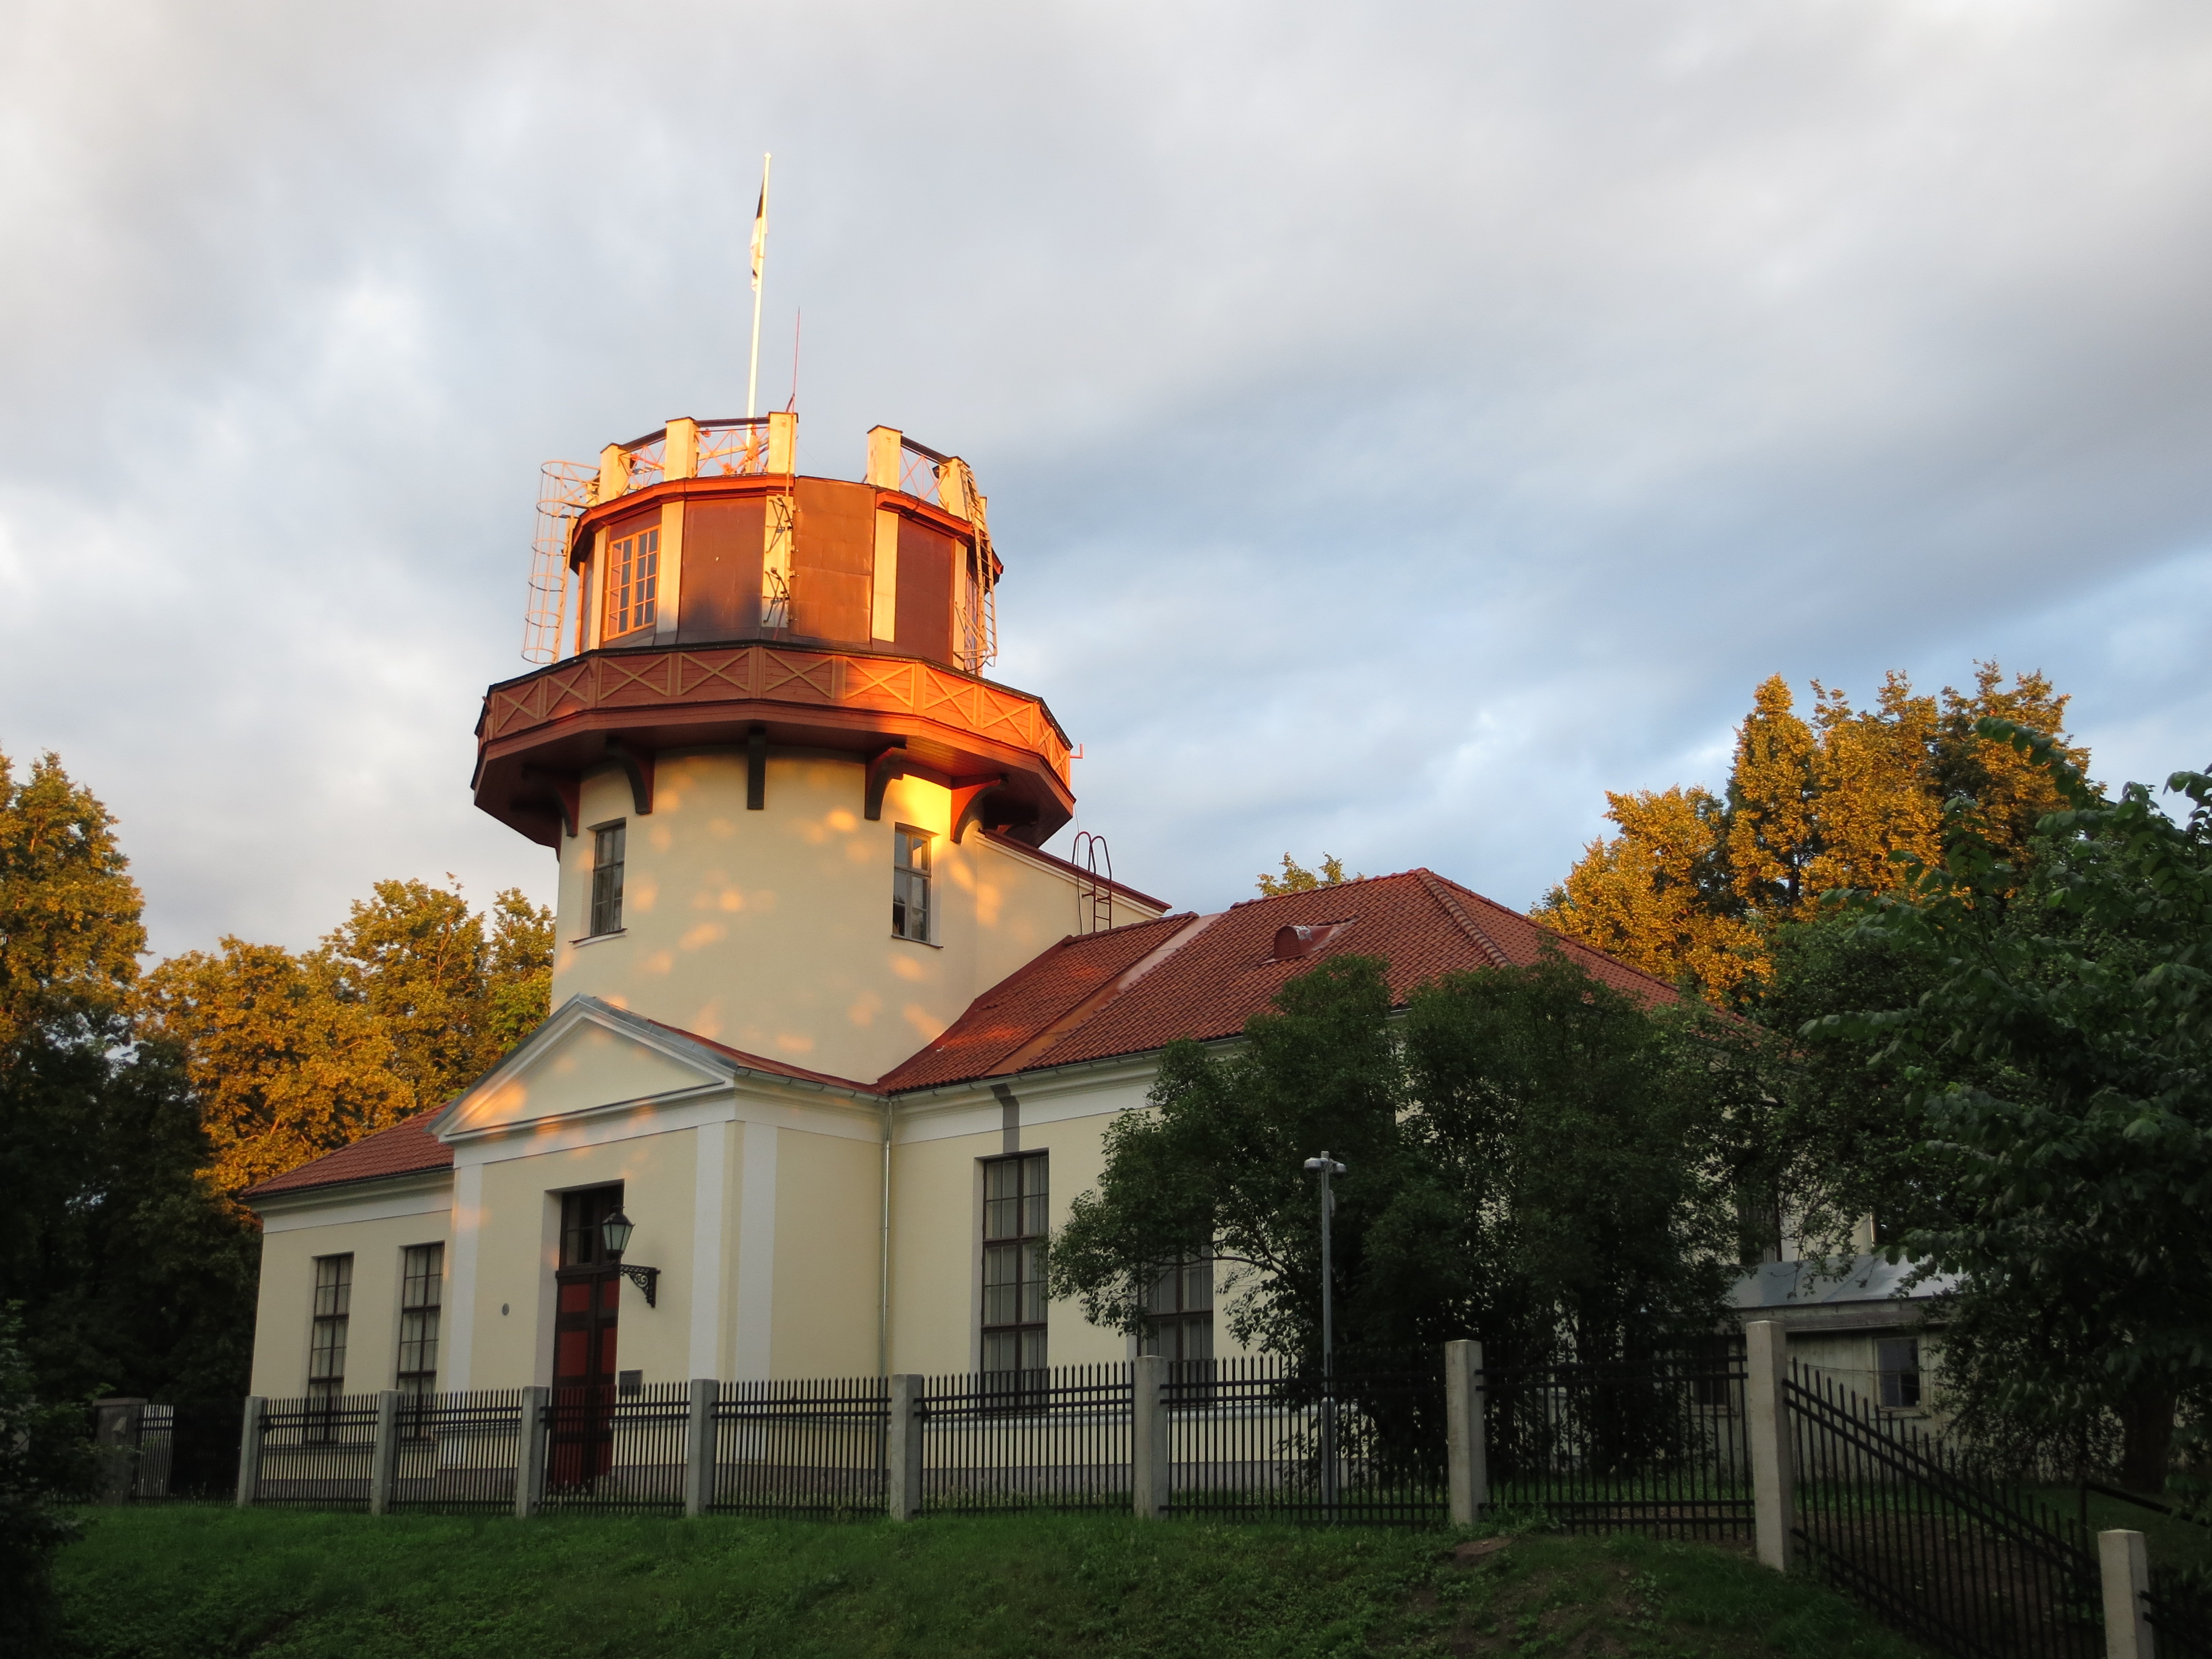 https://upload.wikimedia.org/wikipedia/commons/a/ac/The_Old_Observatory_in_Tartu.jpg